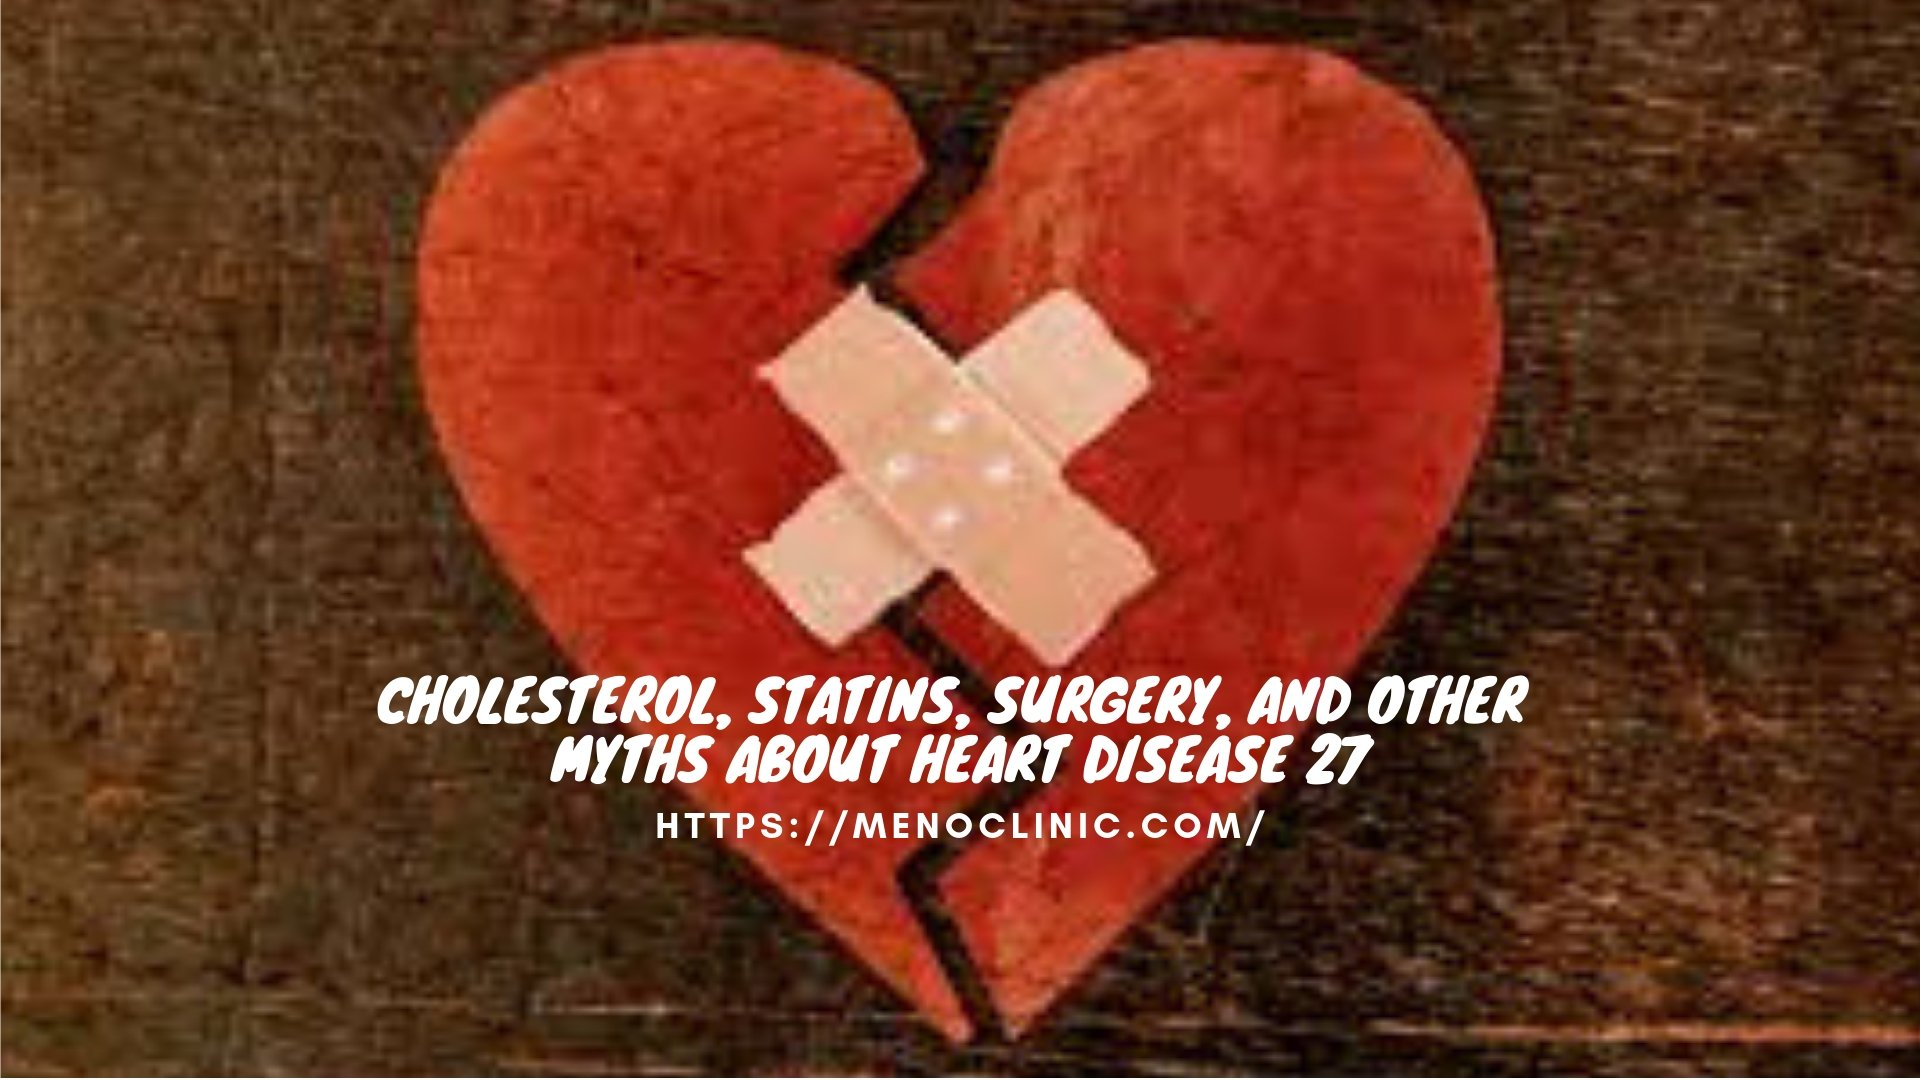 Cholesterol, Statins, Surgery, and Other Myths About Heart Disease 27